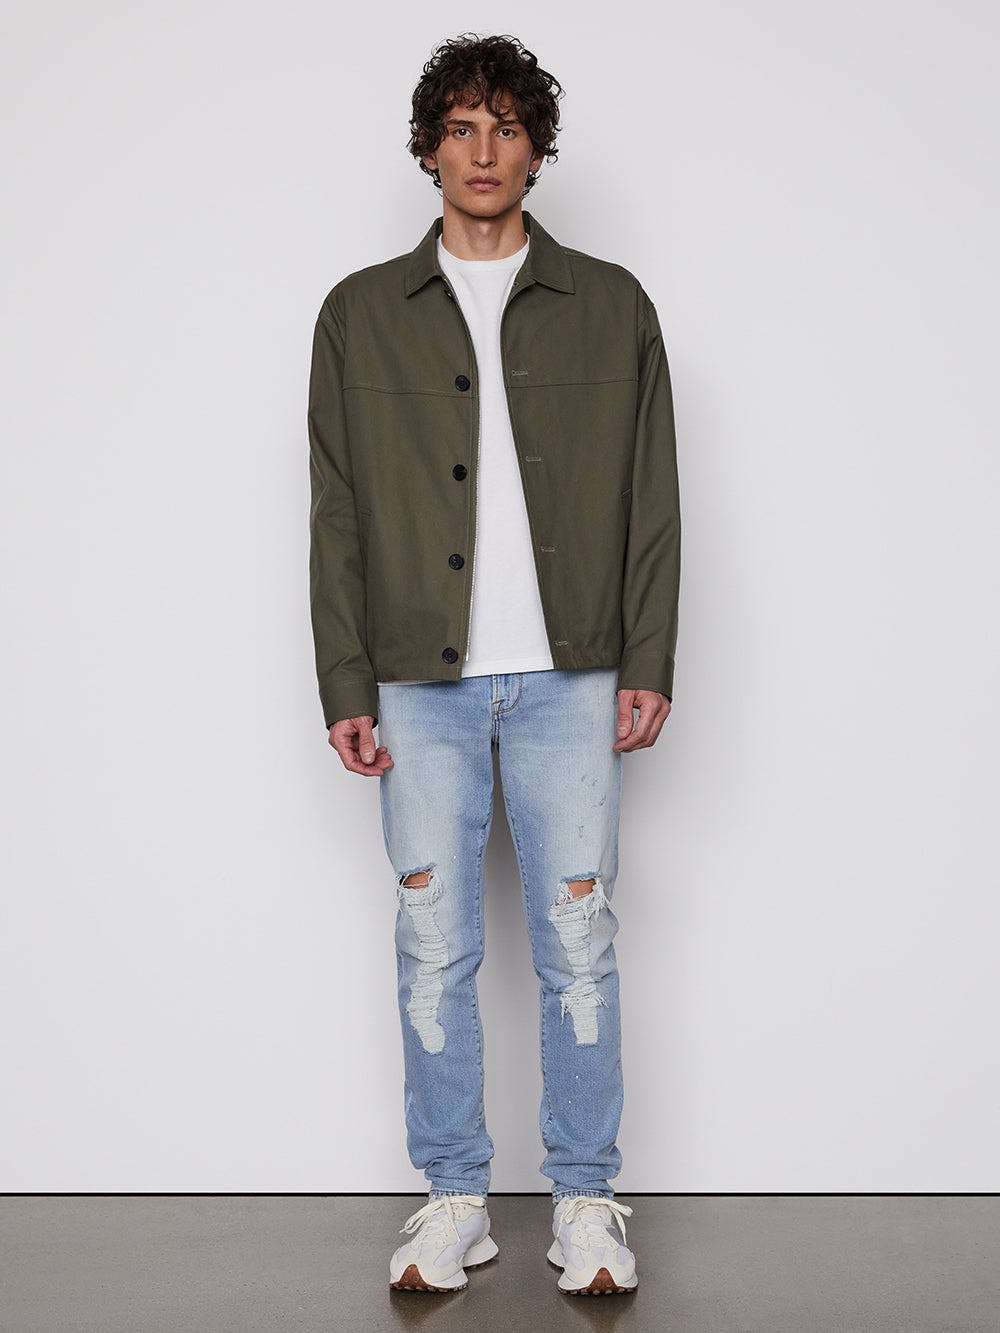 jacket front full body view